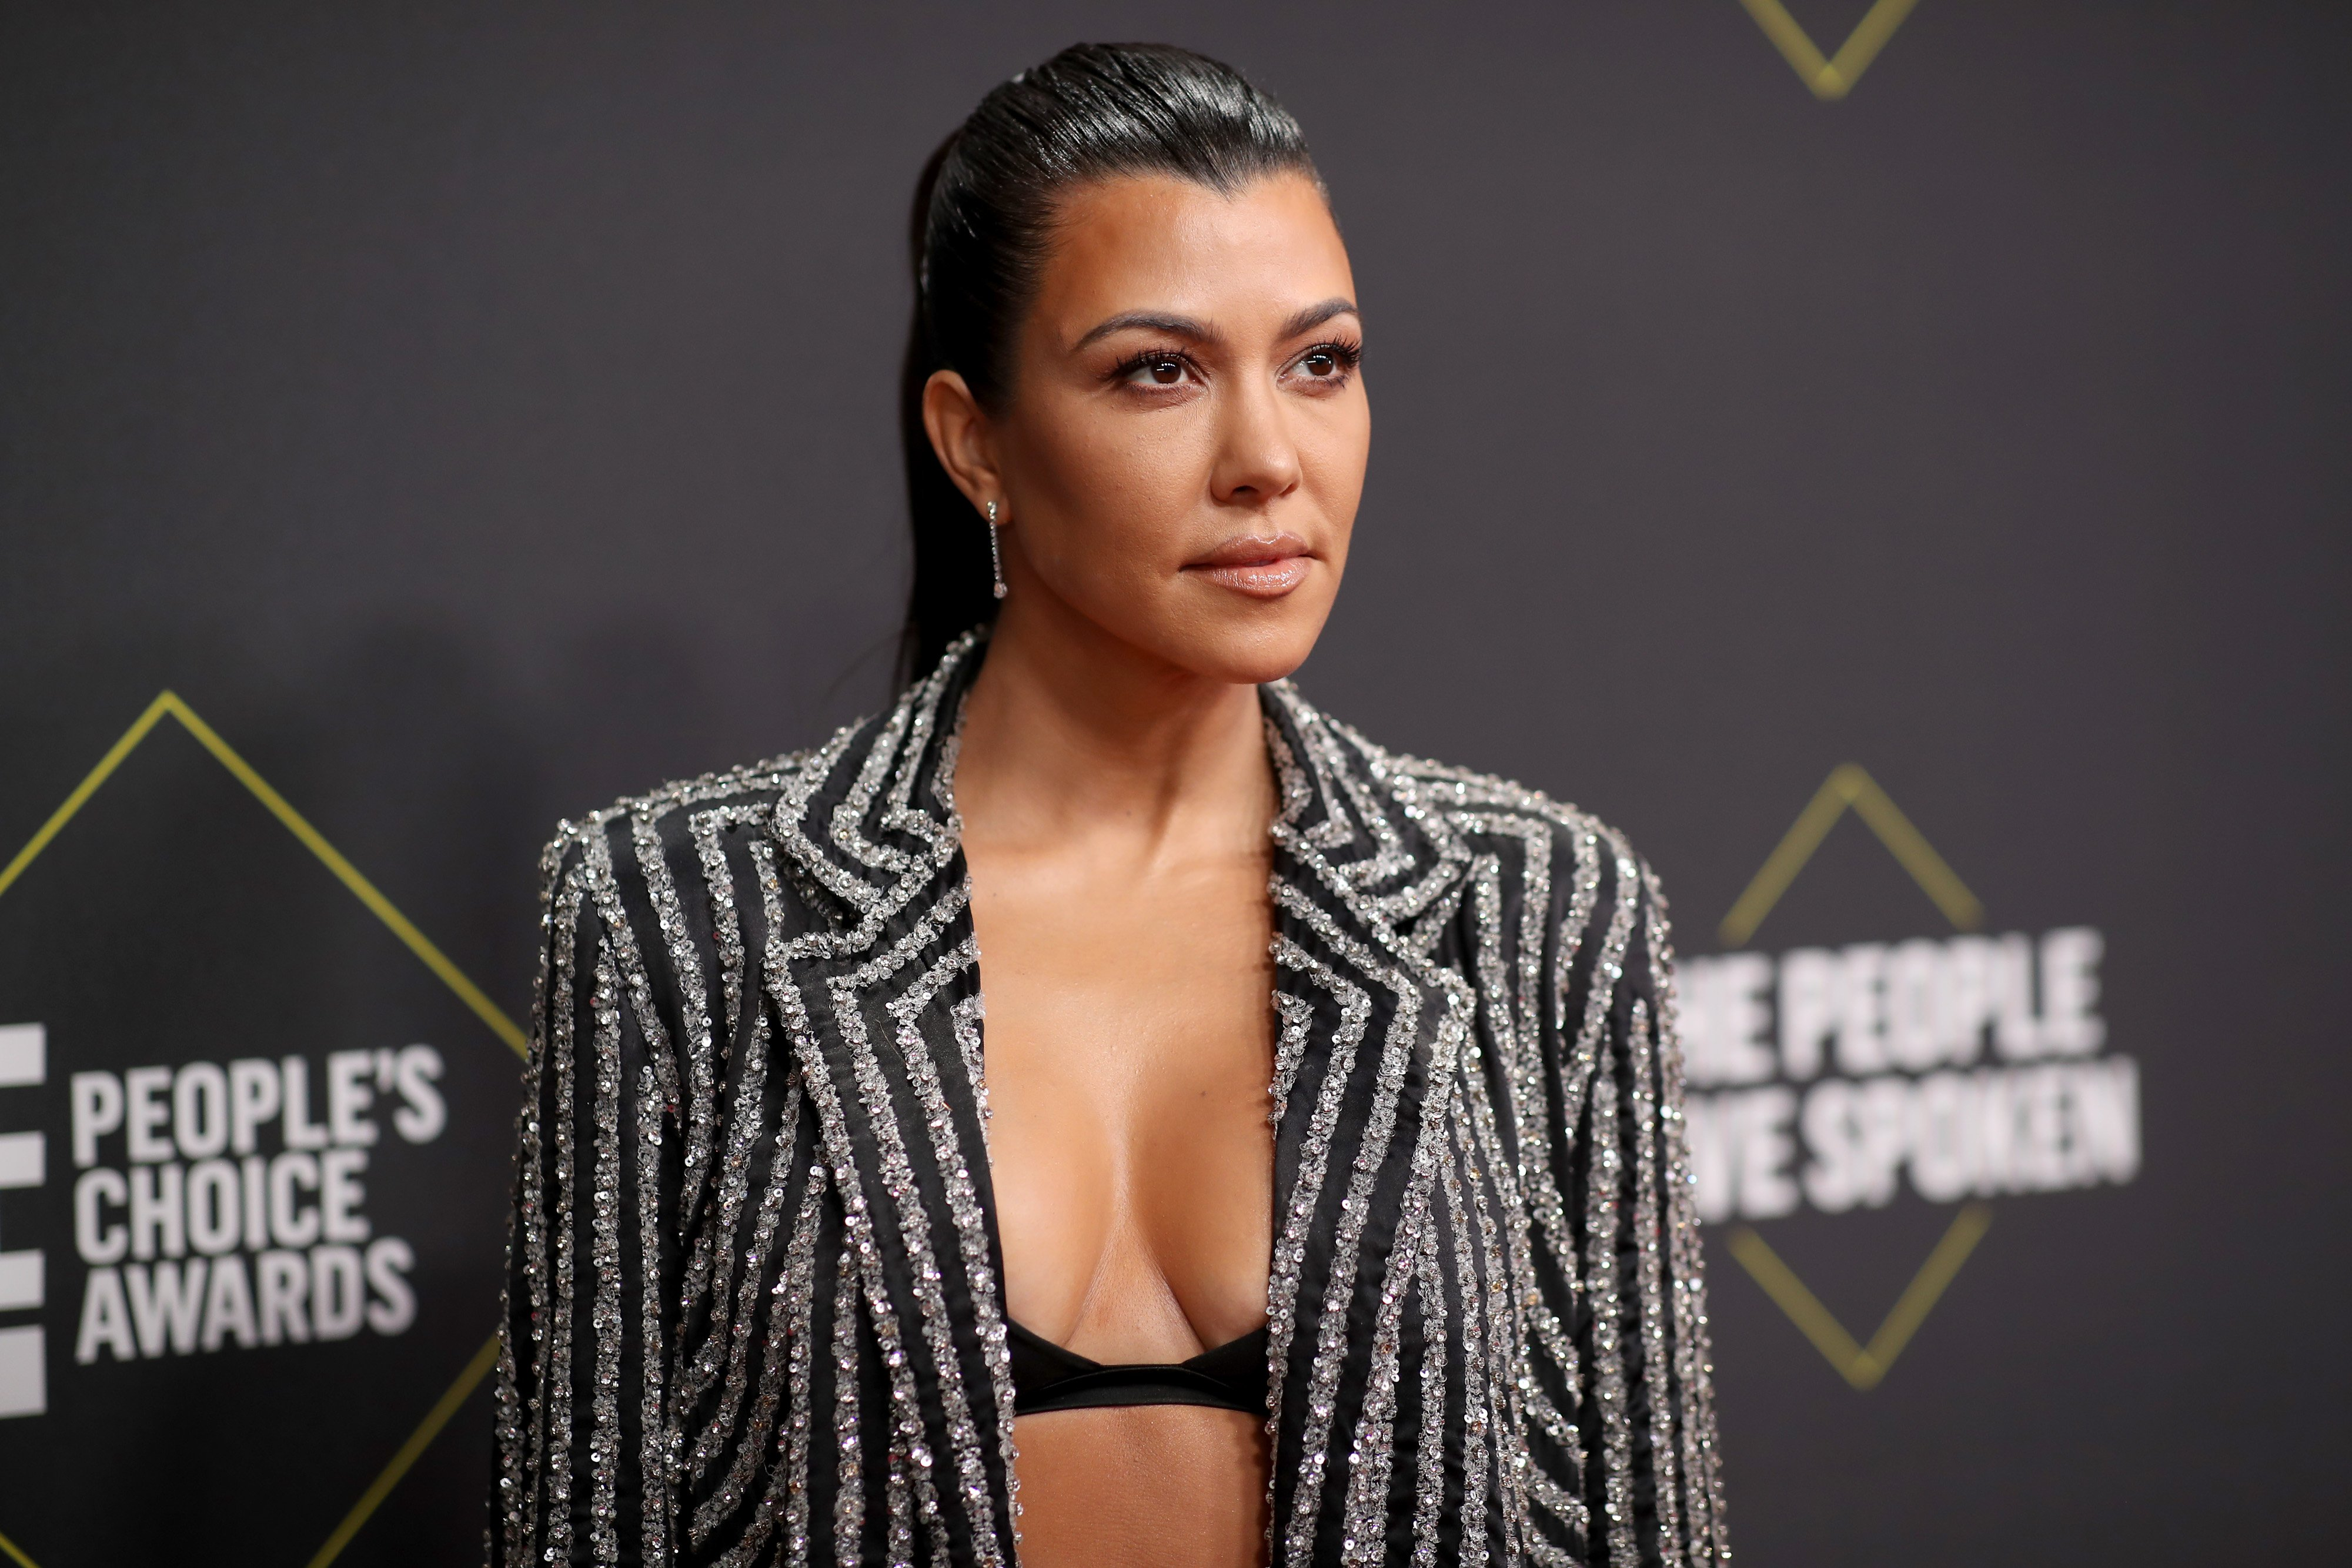 Kourtney Kardashian arrives to the 2019 E! People's Choice Awards held at the Barker Hangar on November 10, 2019 | Photo: Getty Images